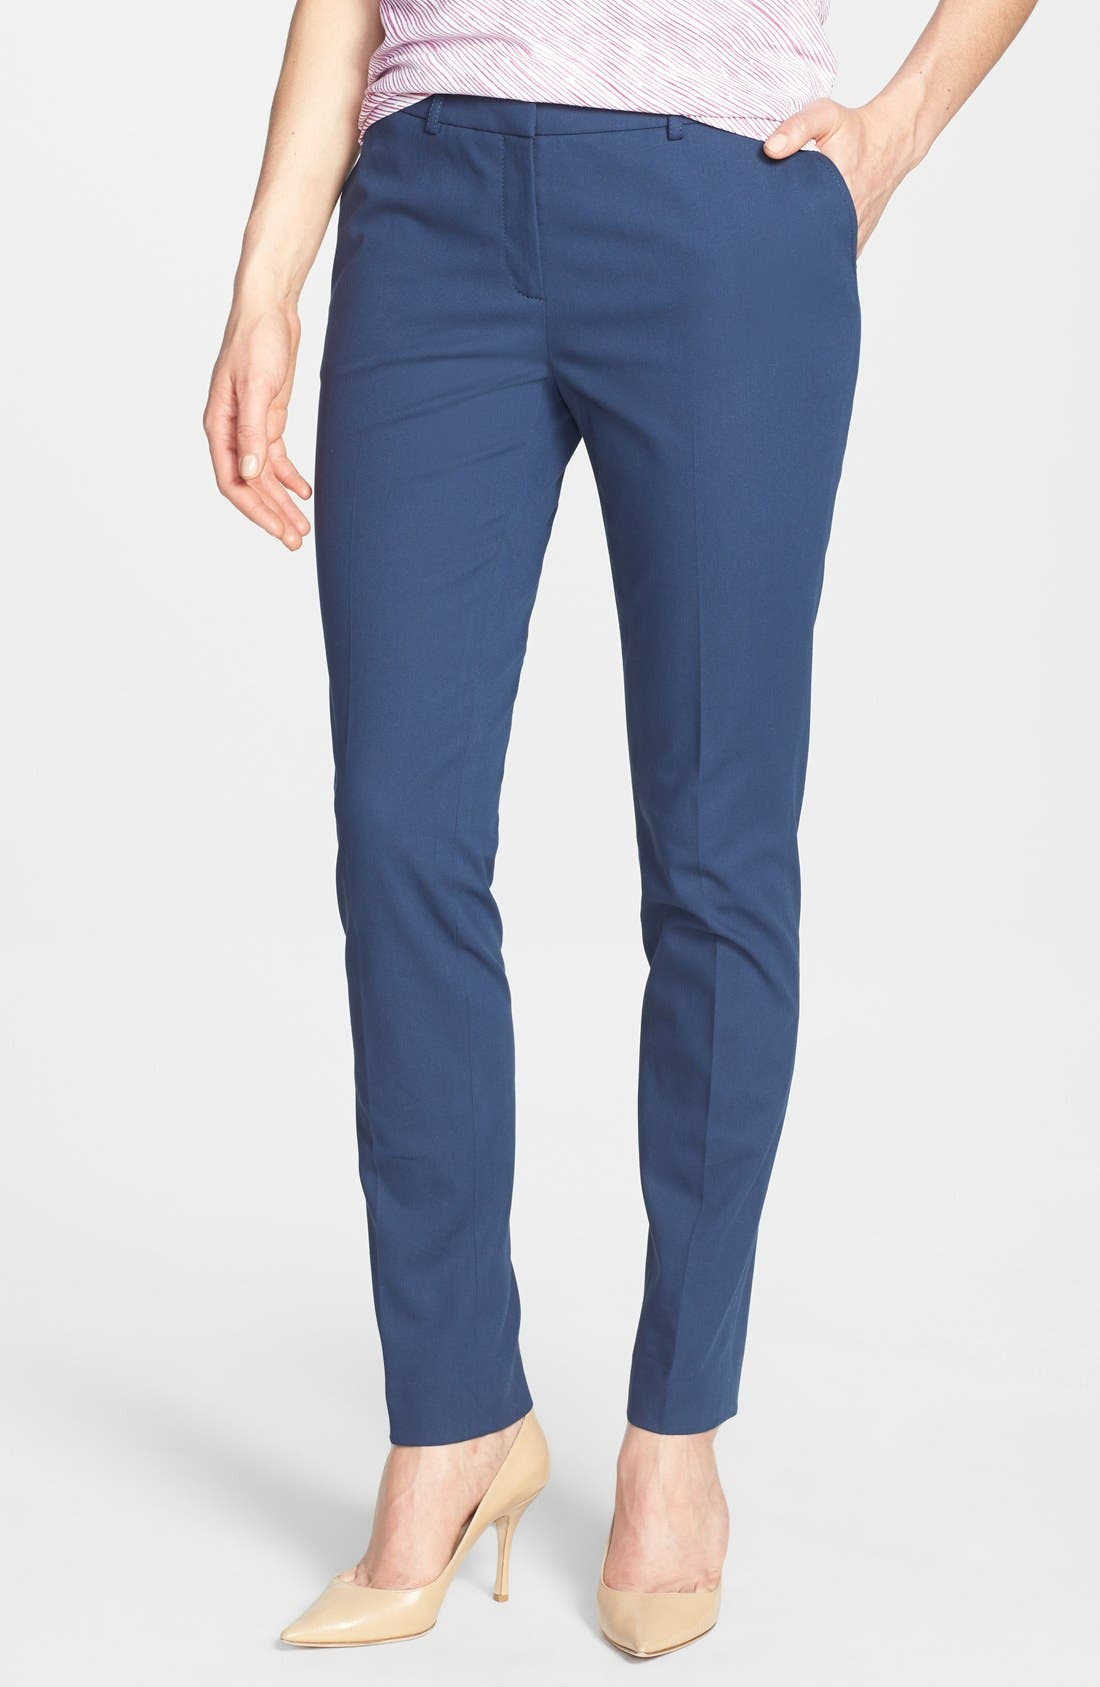 Alternate Image 1 Selected - Lafayette 148 New York Polished Twill Skinny Ankle Pant